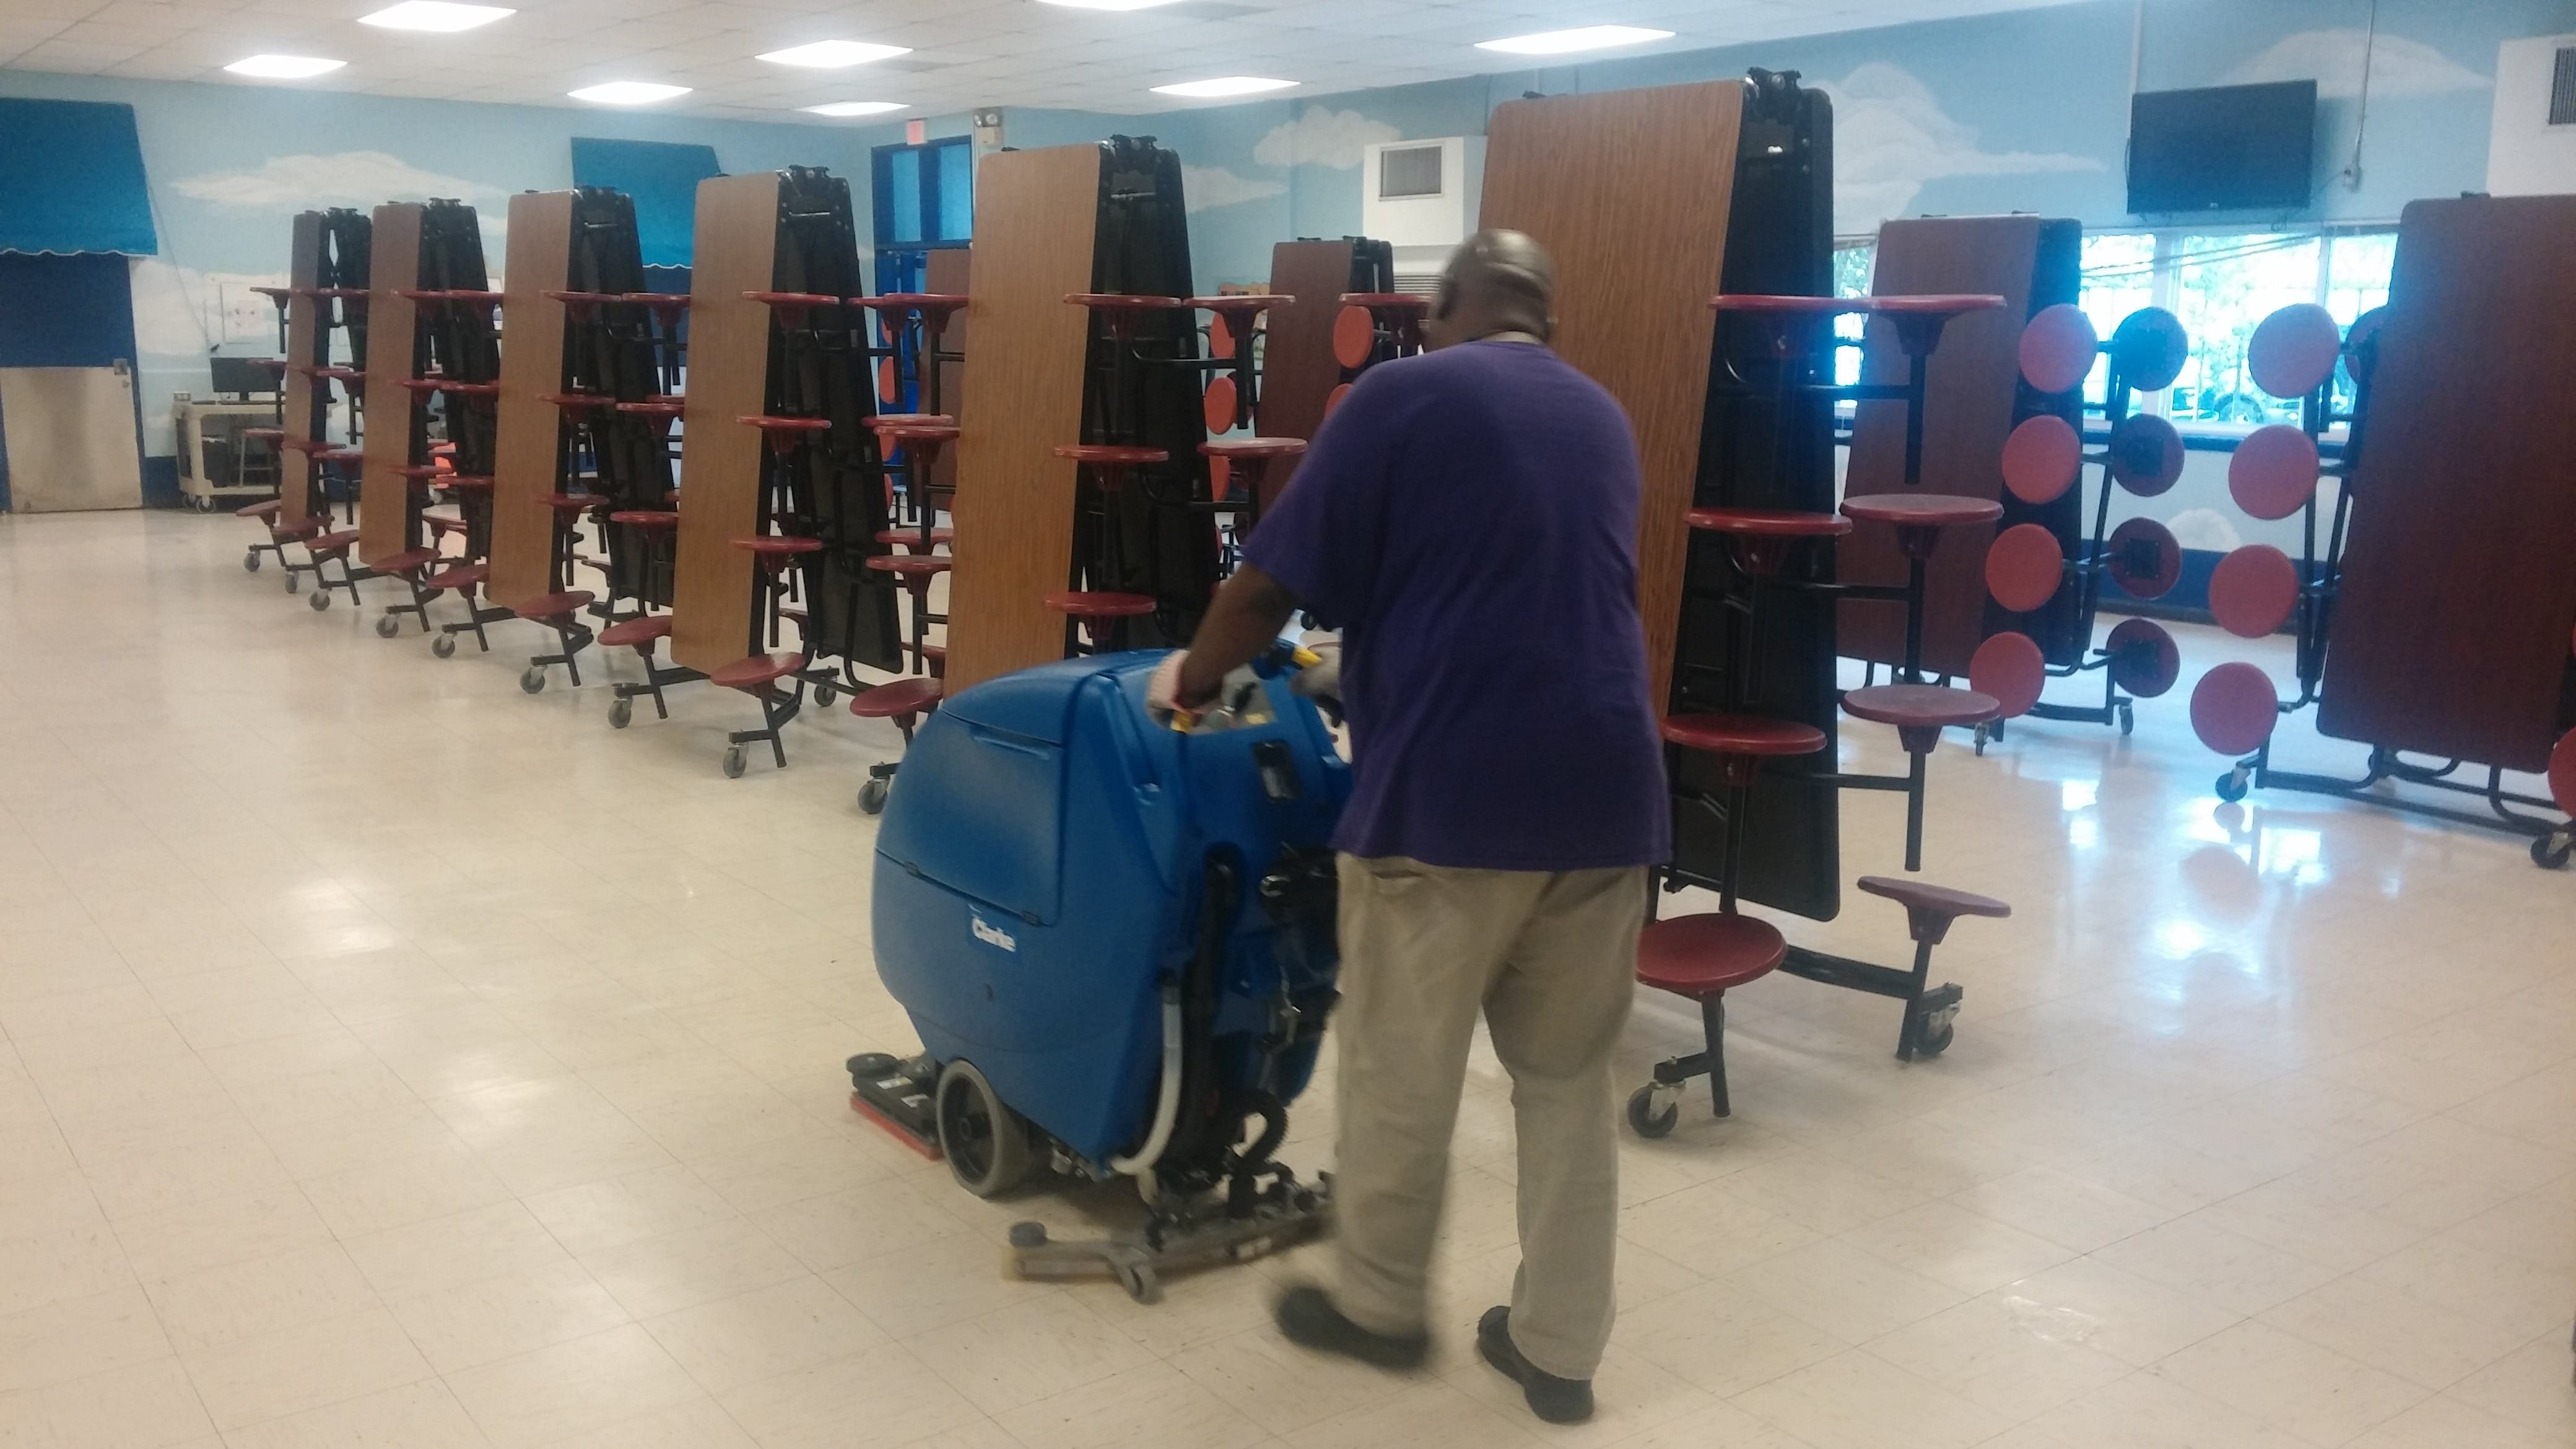 Cleaning means much more to this primary school custodian